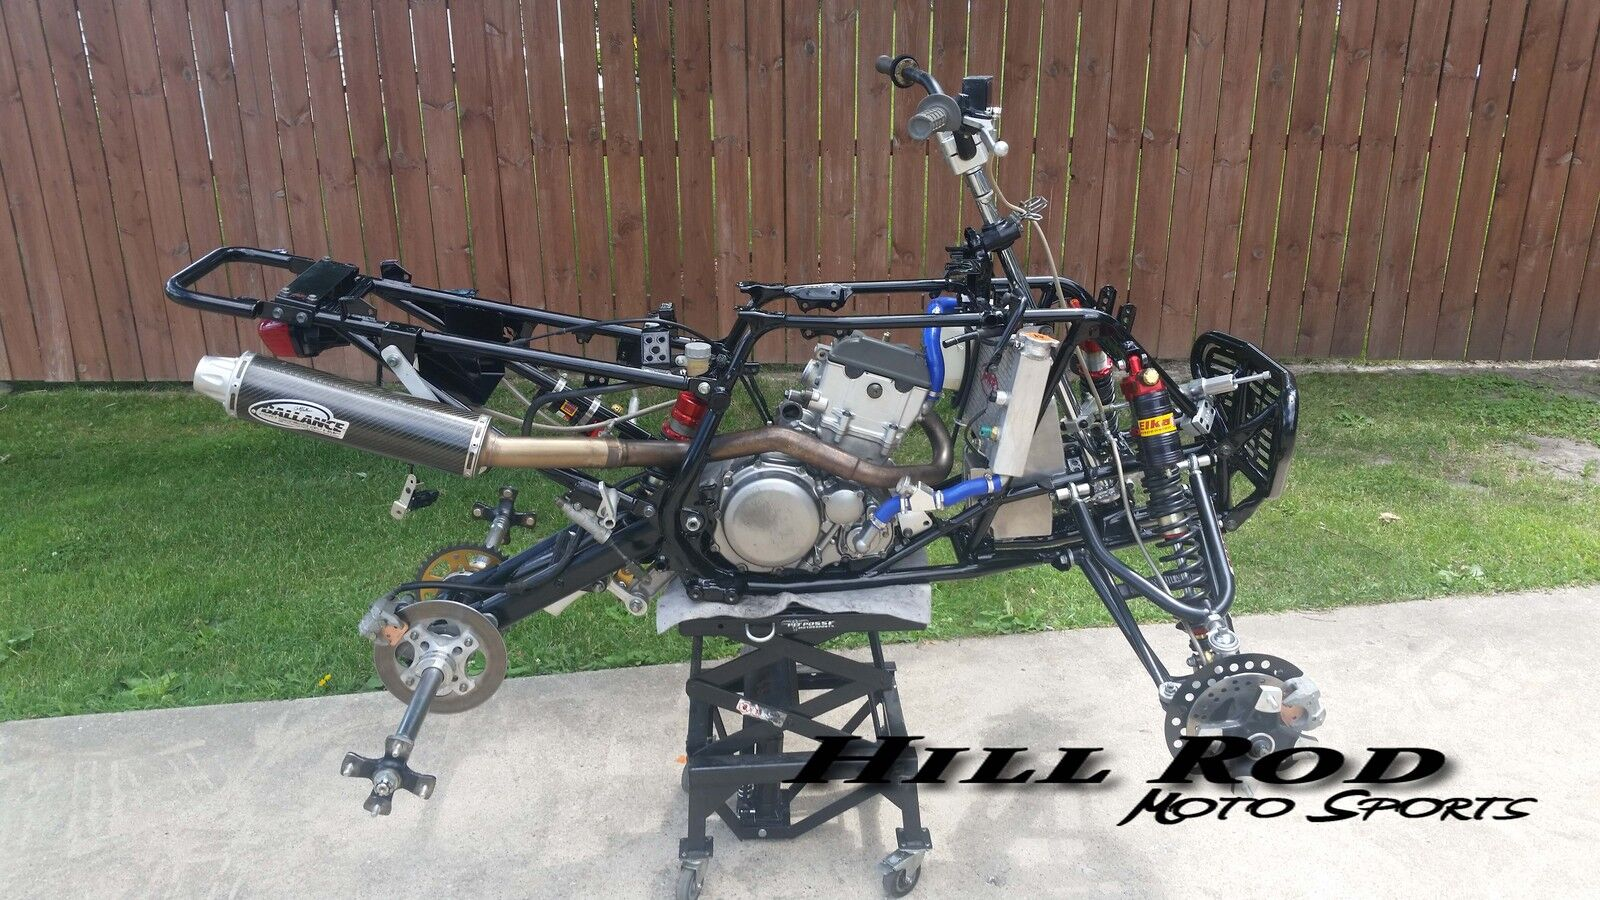 Hill Rod Moto Sports